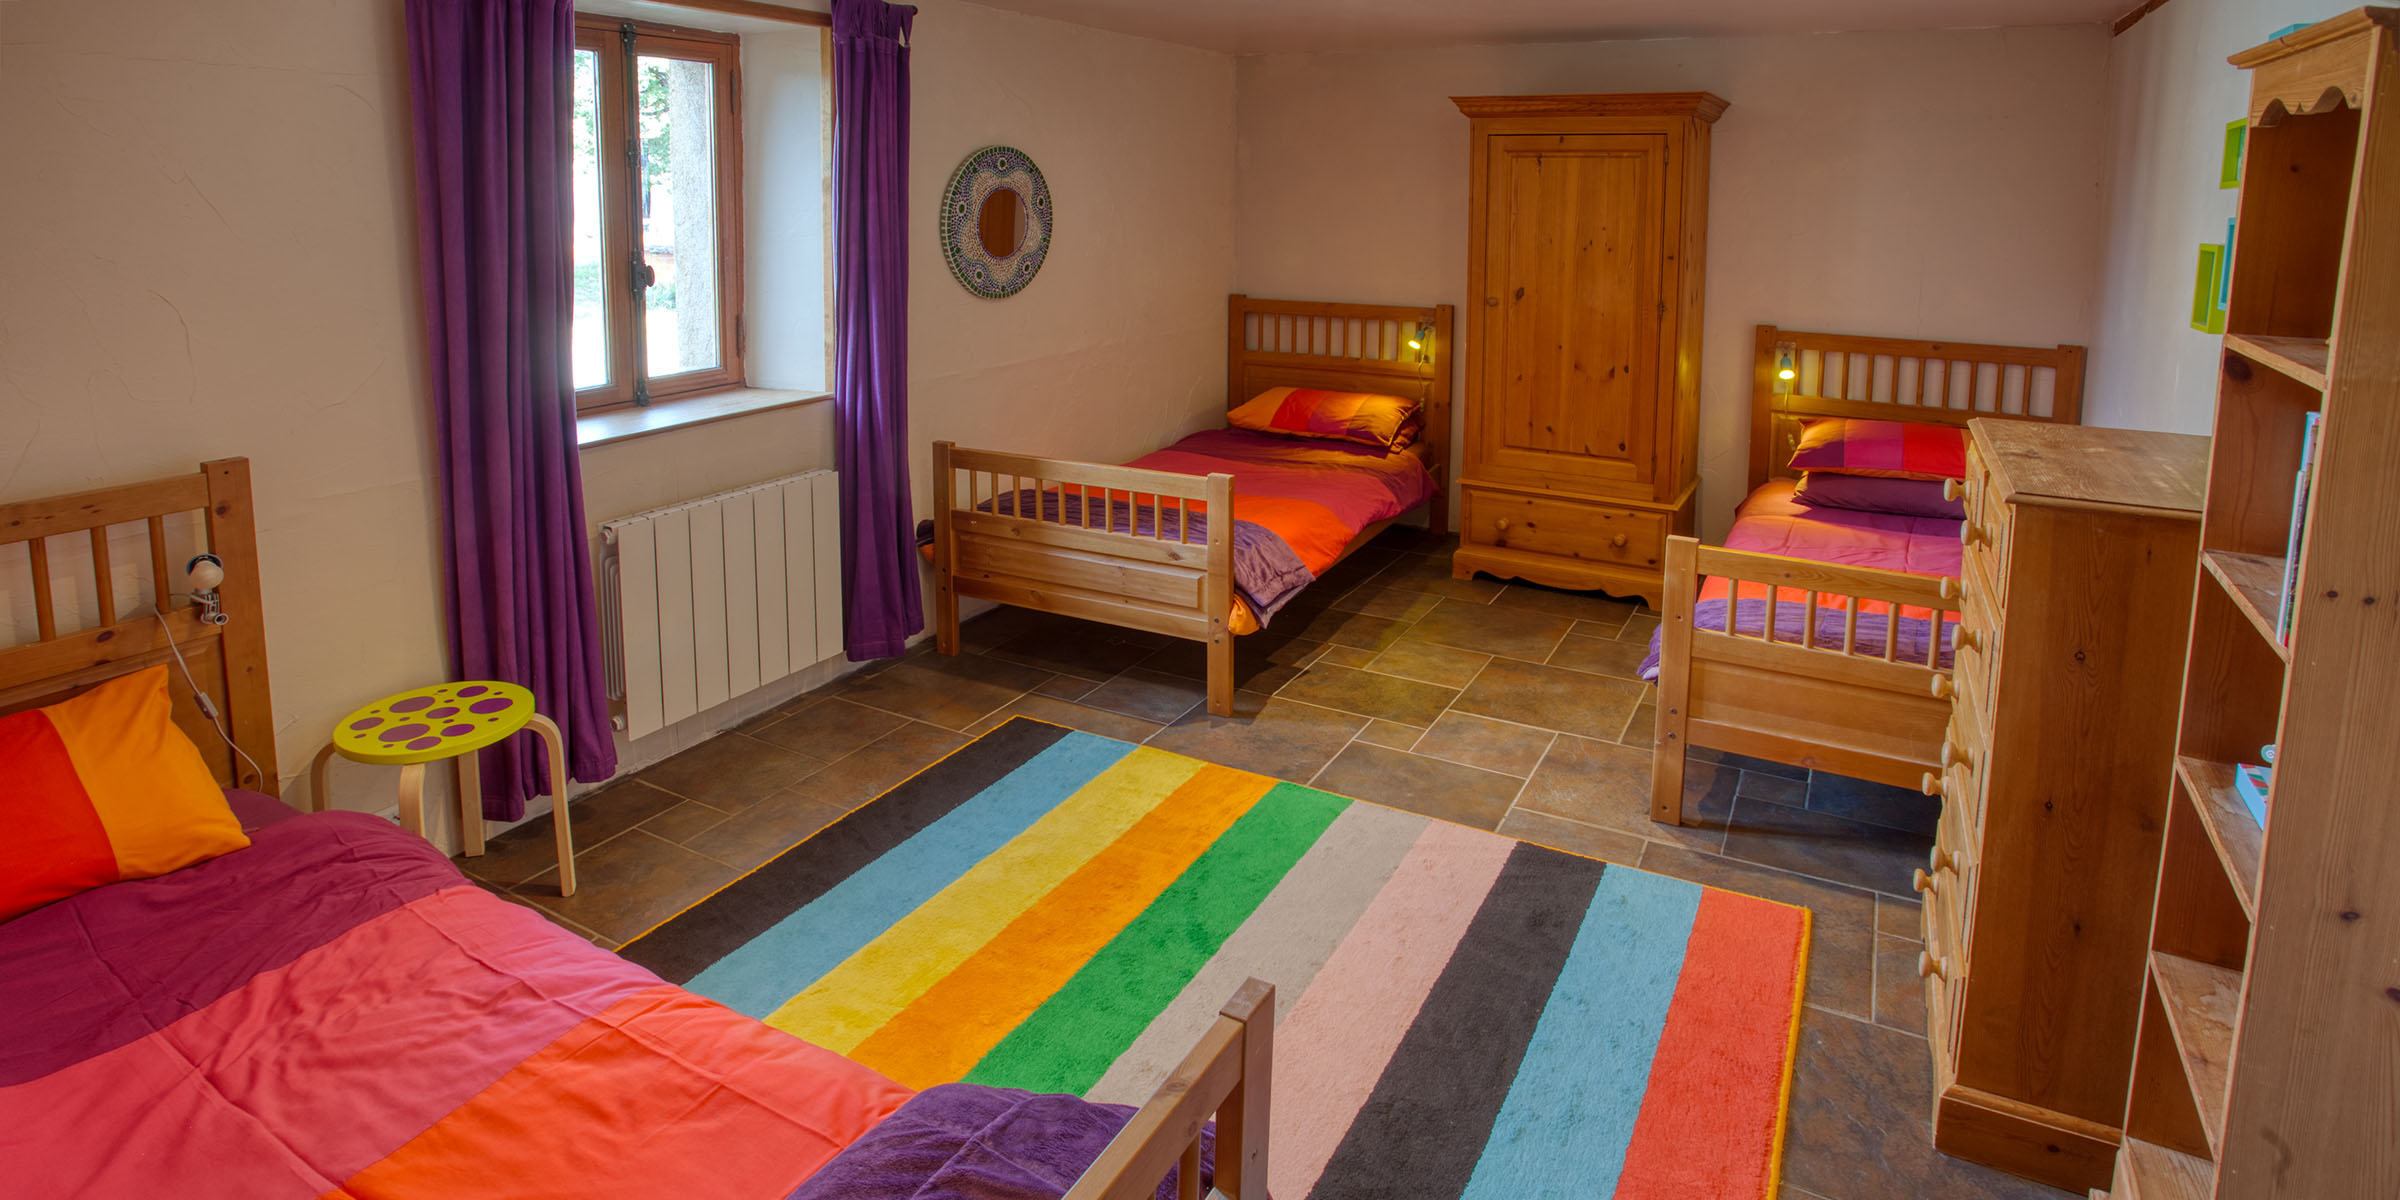 Two double bunkbeds, ideal for 4 children or young adults with plenty of space to play or just hang out.